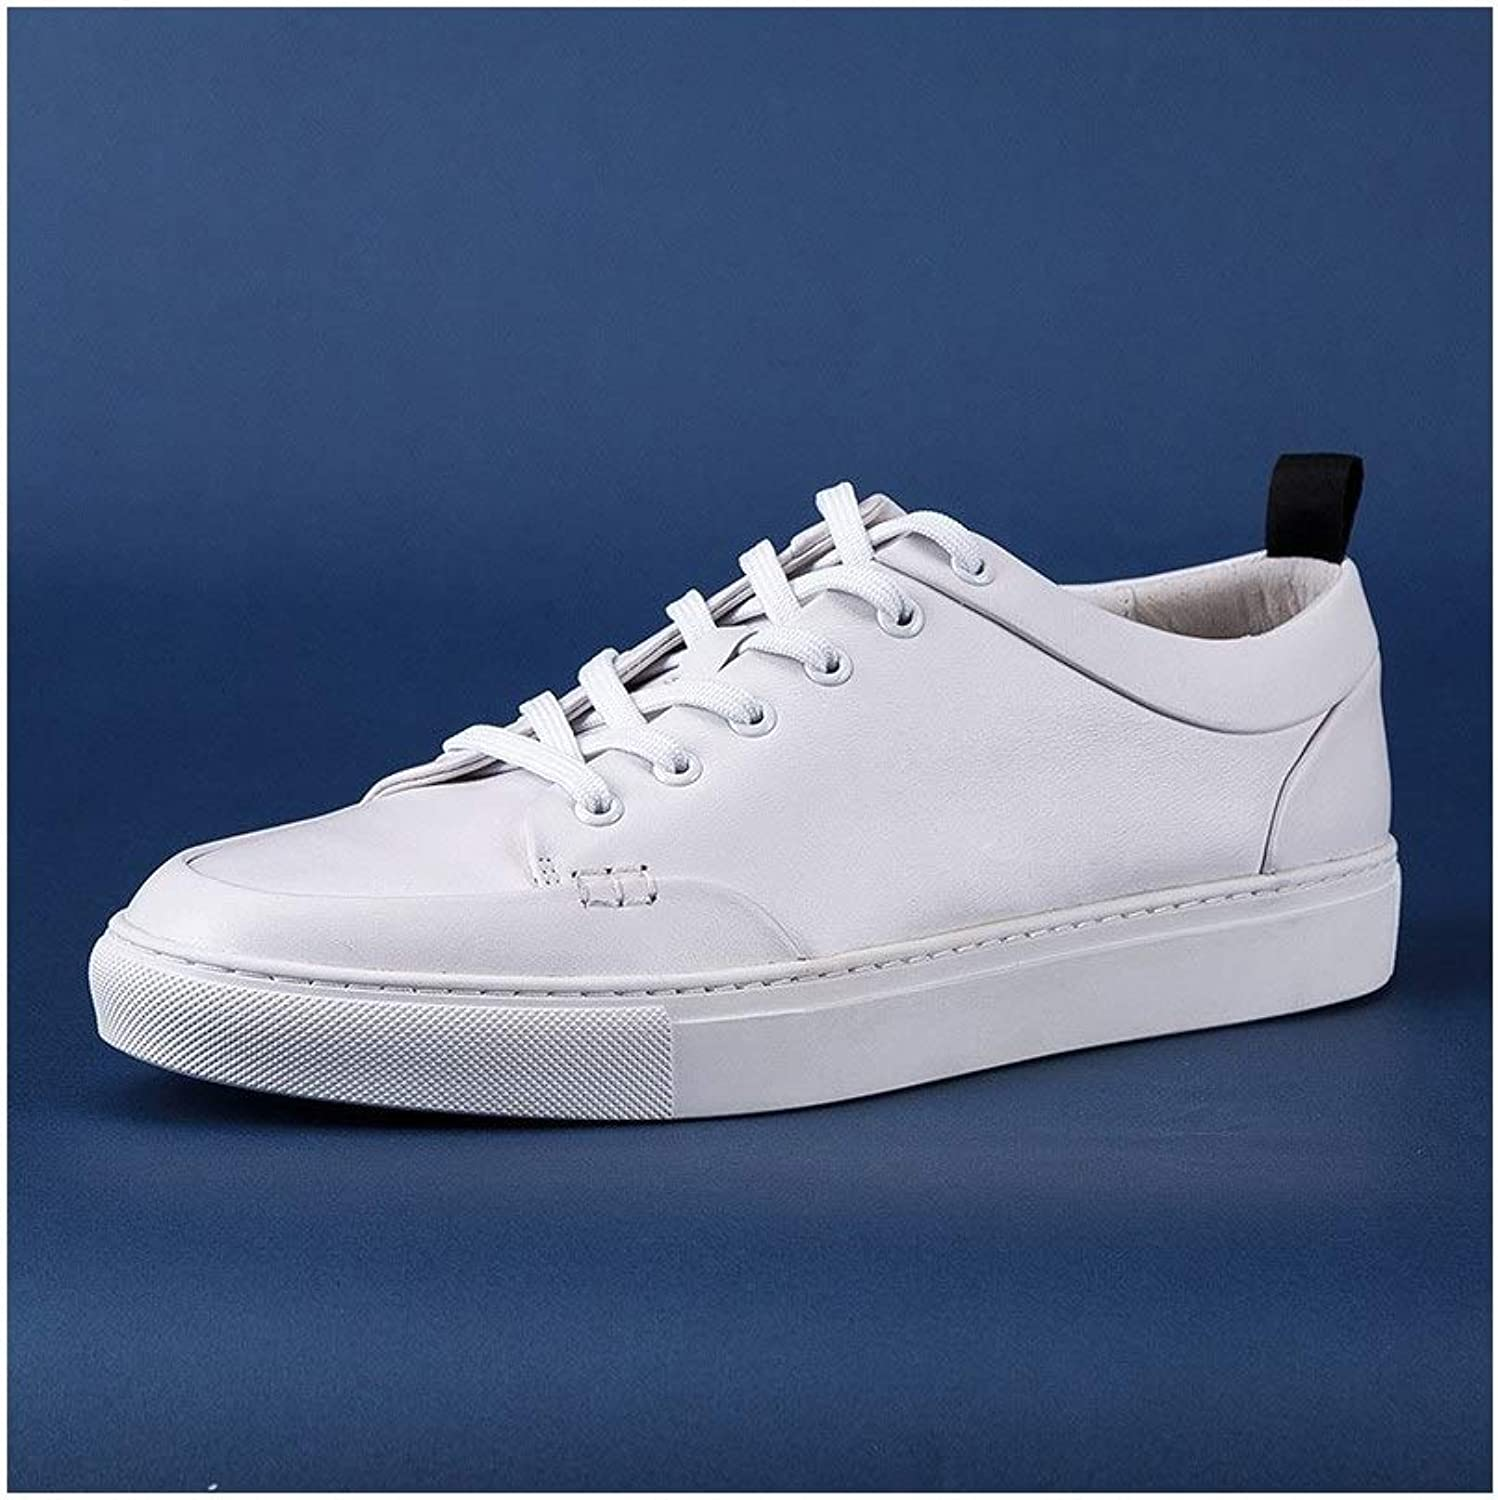 Fashion Men's Leather shoes Trend Wild Casual shoes White shoes Handmade Men's shoes Spring lace Breathable Men's Boots (color   White, Size   7UK)